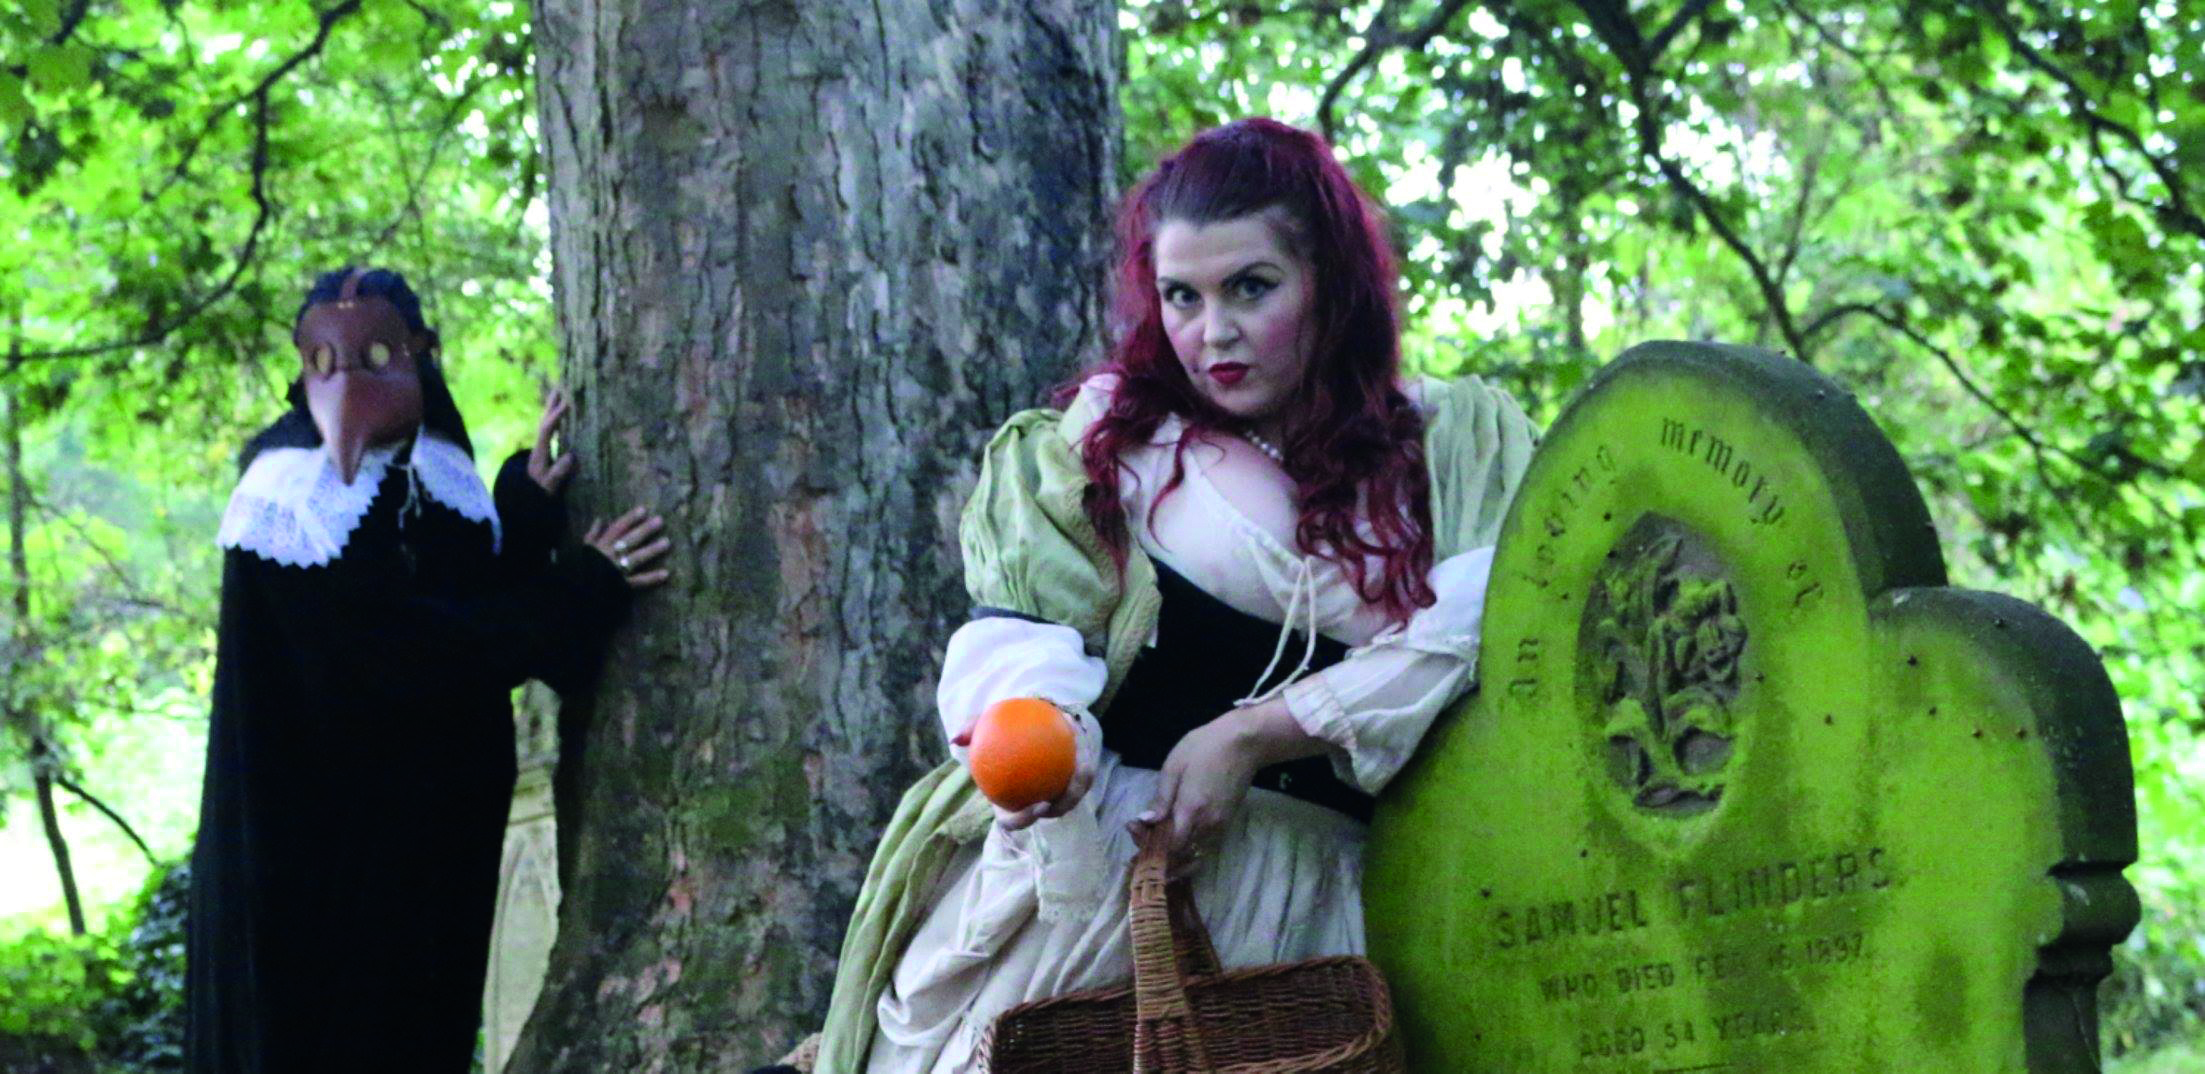 Cambridge witches tour